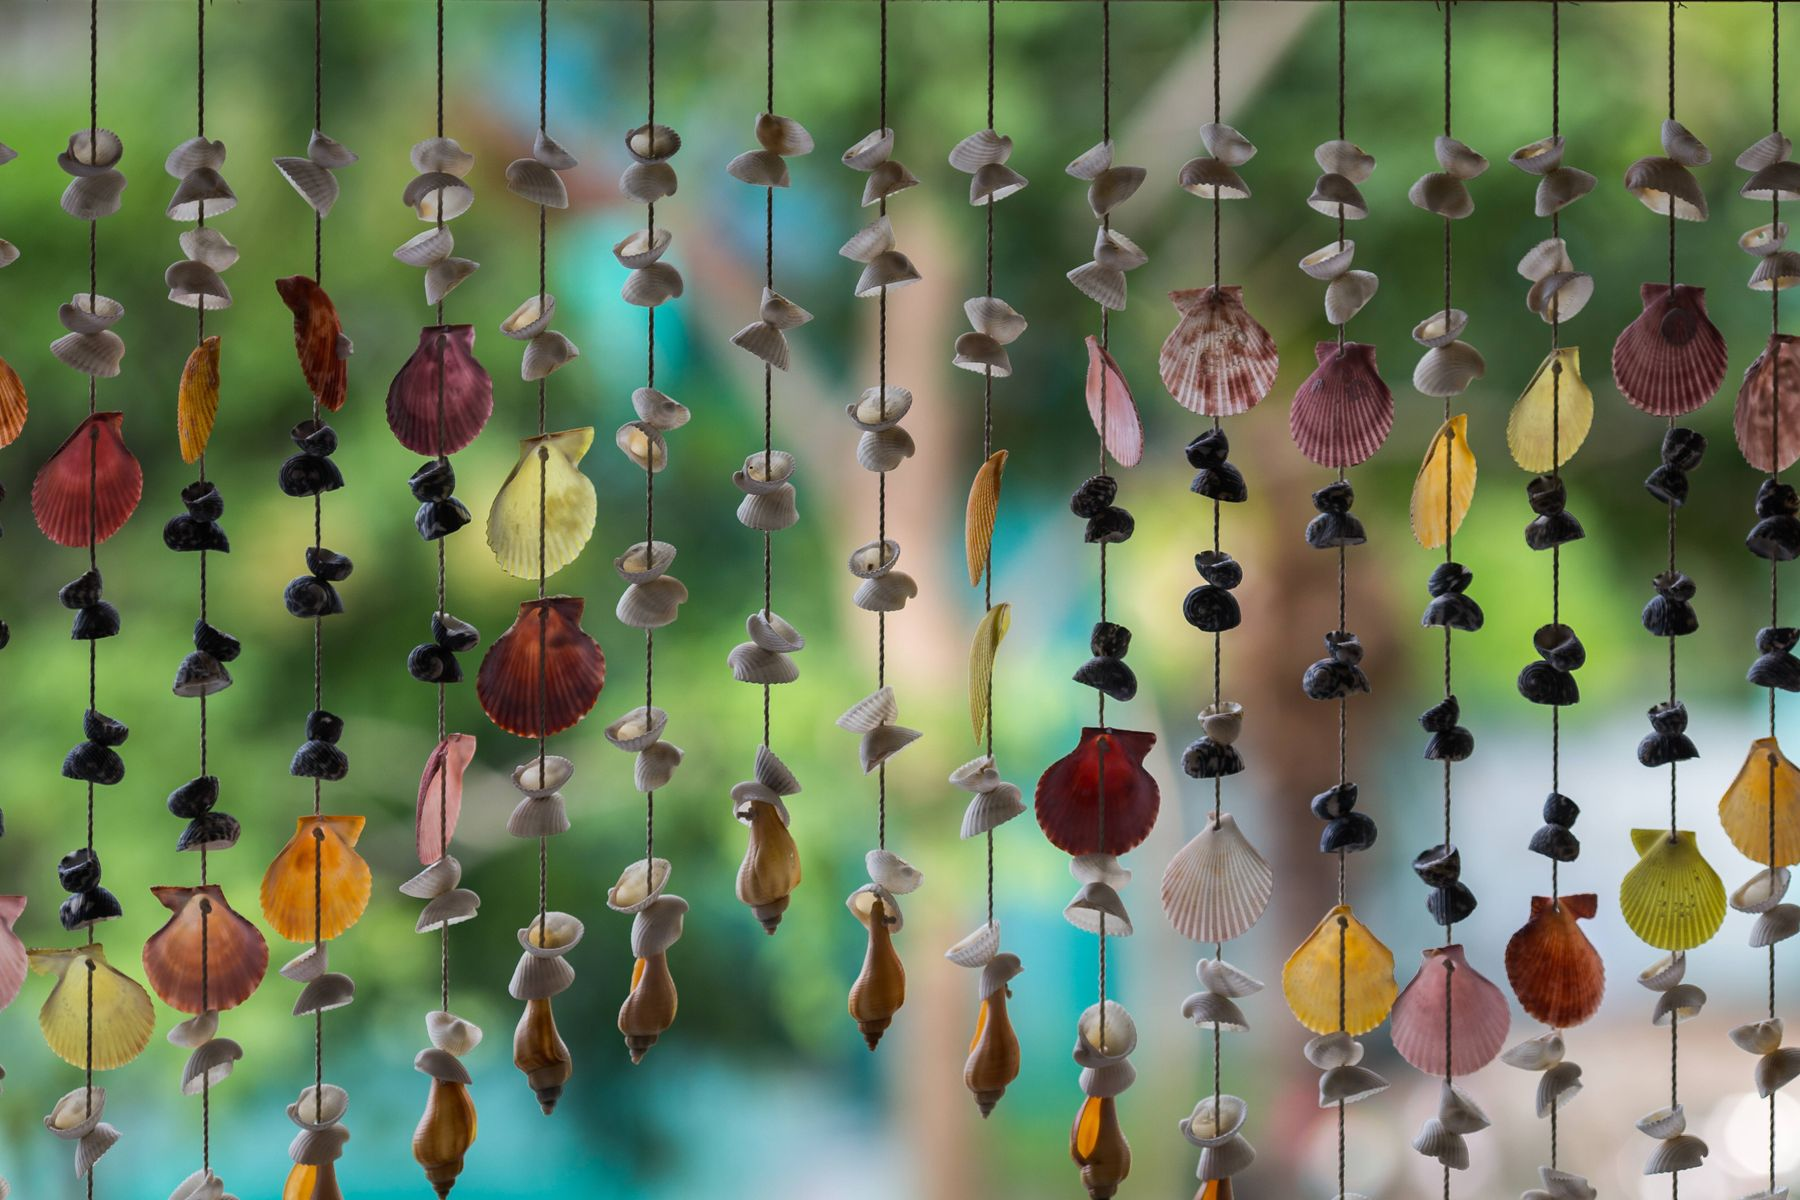 How to make wind chimes and other garden crafts for kids